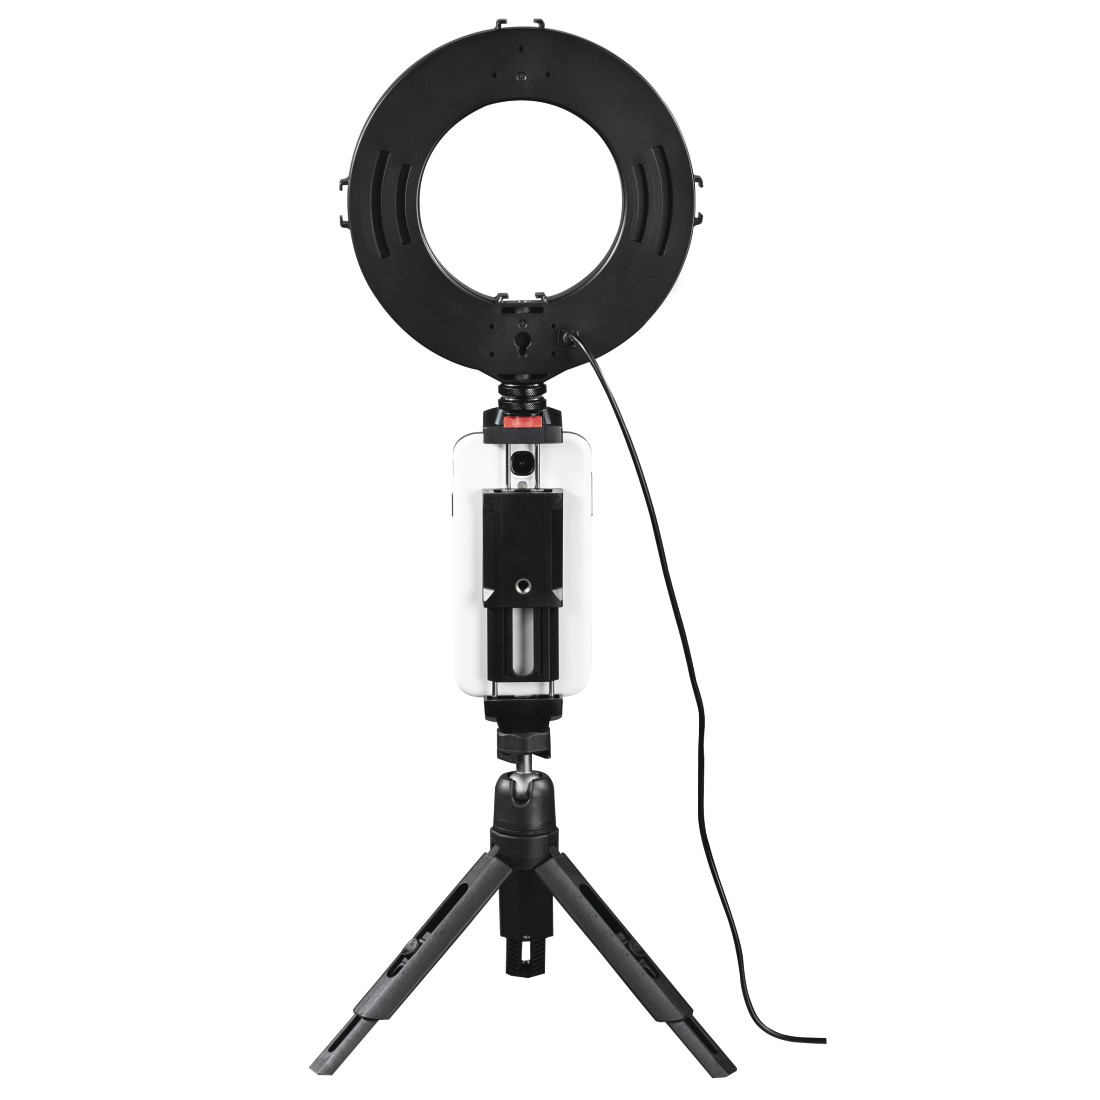 "awx5 High-Res Appliance 5 - Hama, ""SpotLight Work Area 67"" LED Ring Light, Set for Smartphone and Tablet"